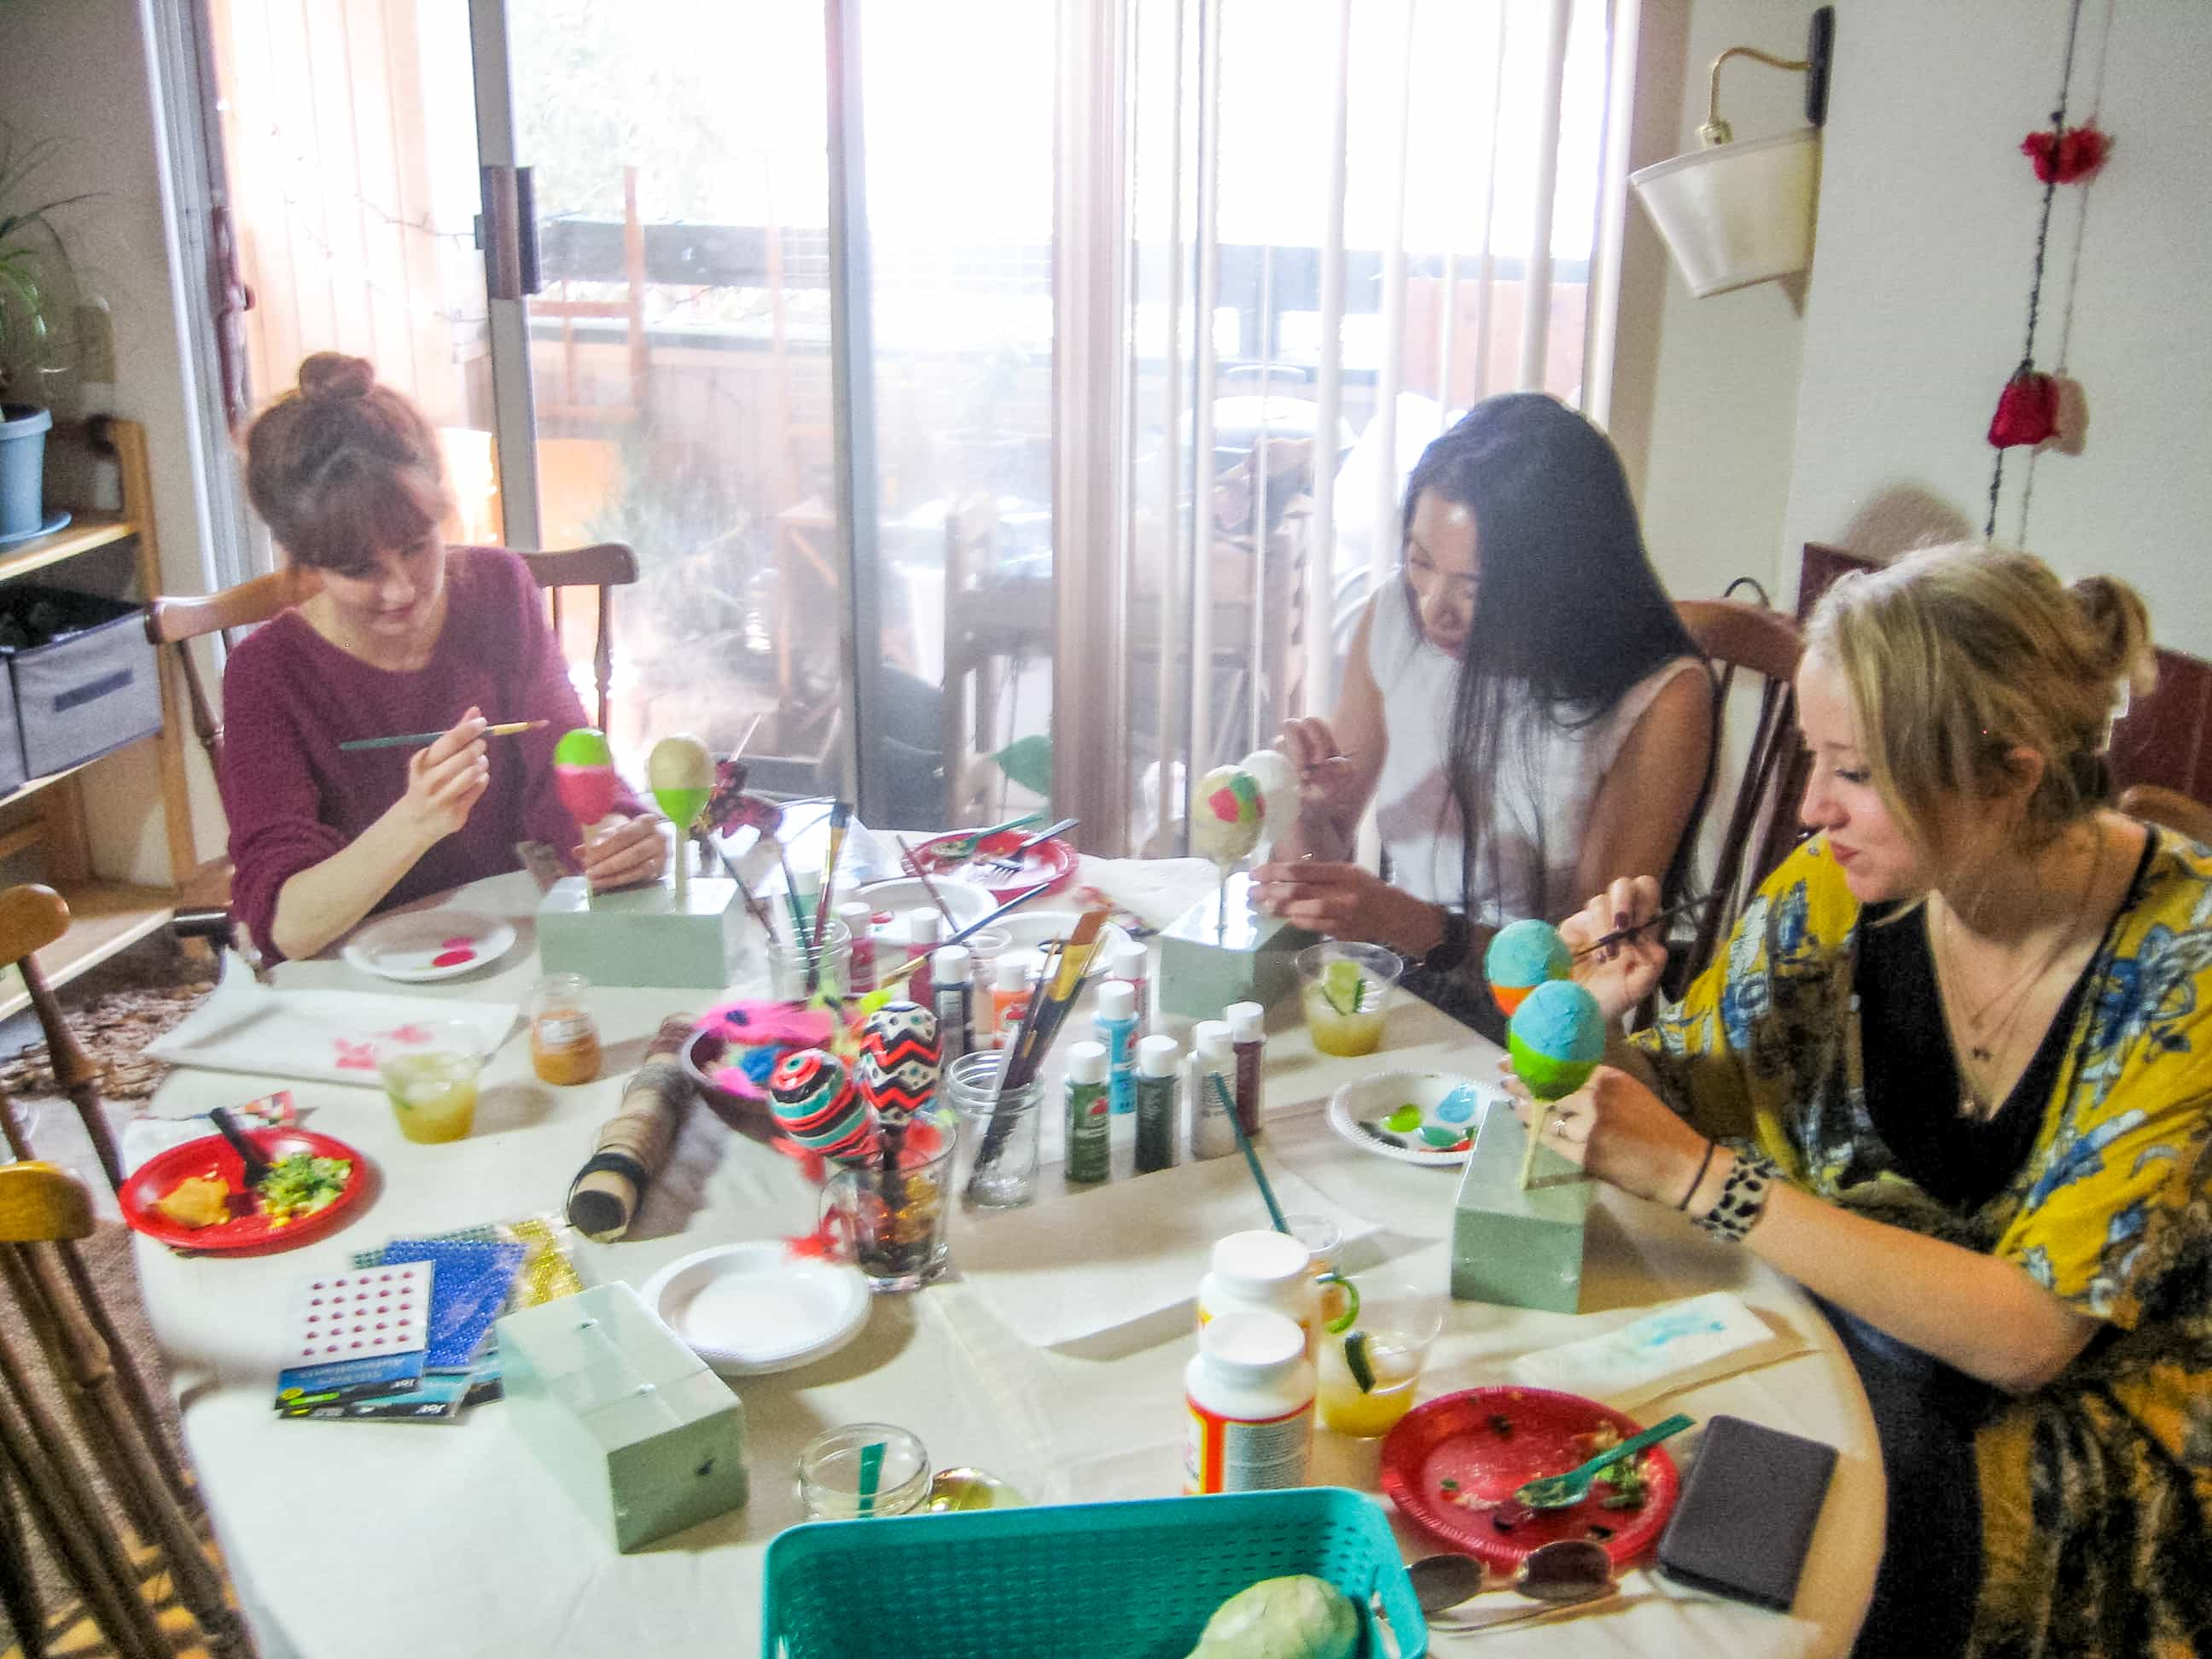 Photo of girls painting maracas at craft table